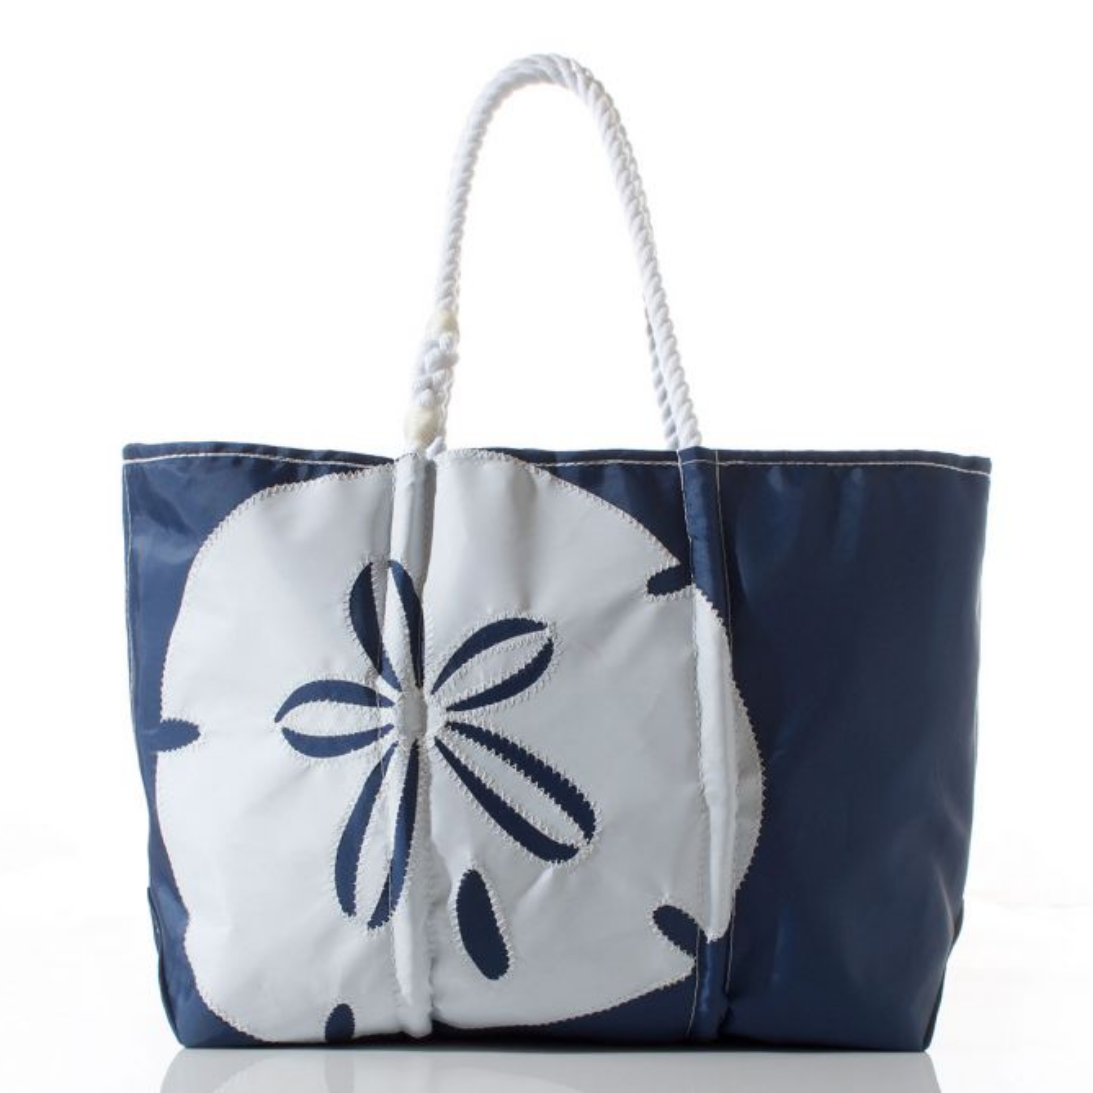 Sea Bags introduces its new spring collection